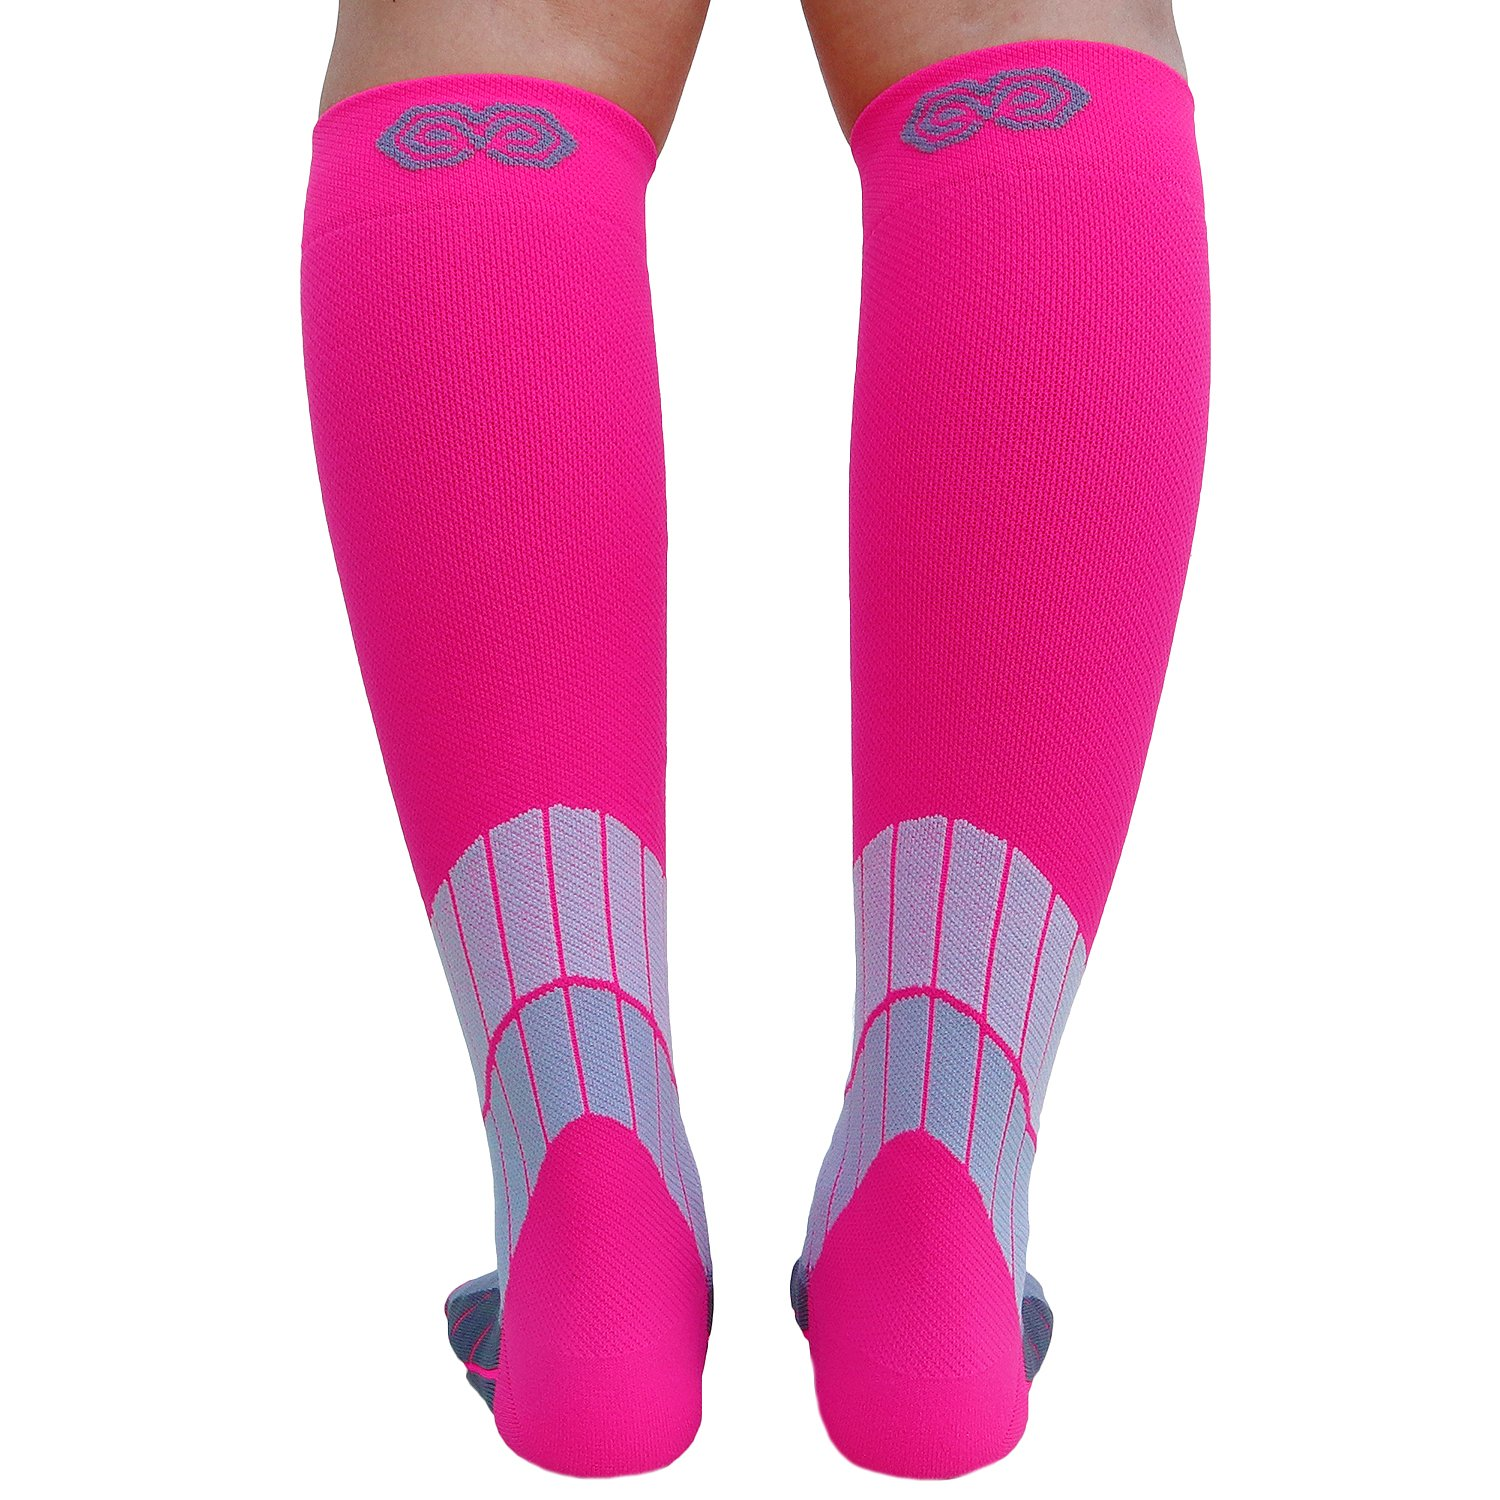 BLITZU Compression Socks 15-20mmHg for Men & Women BEST Recovery Performance Stockings for Running, Medical, Athletic, Edema, Diabetic, Varicose Veins, Travel, Pregnancy, Relief Shin Splint S/M Pink by BLITZU (Image #10)